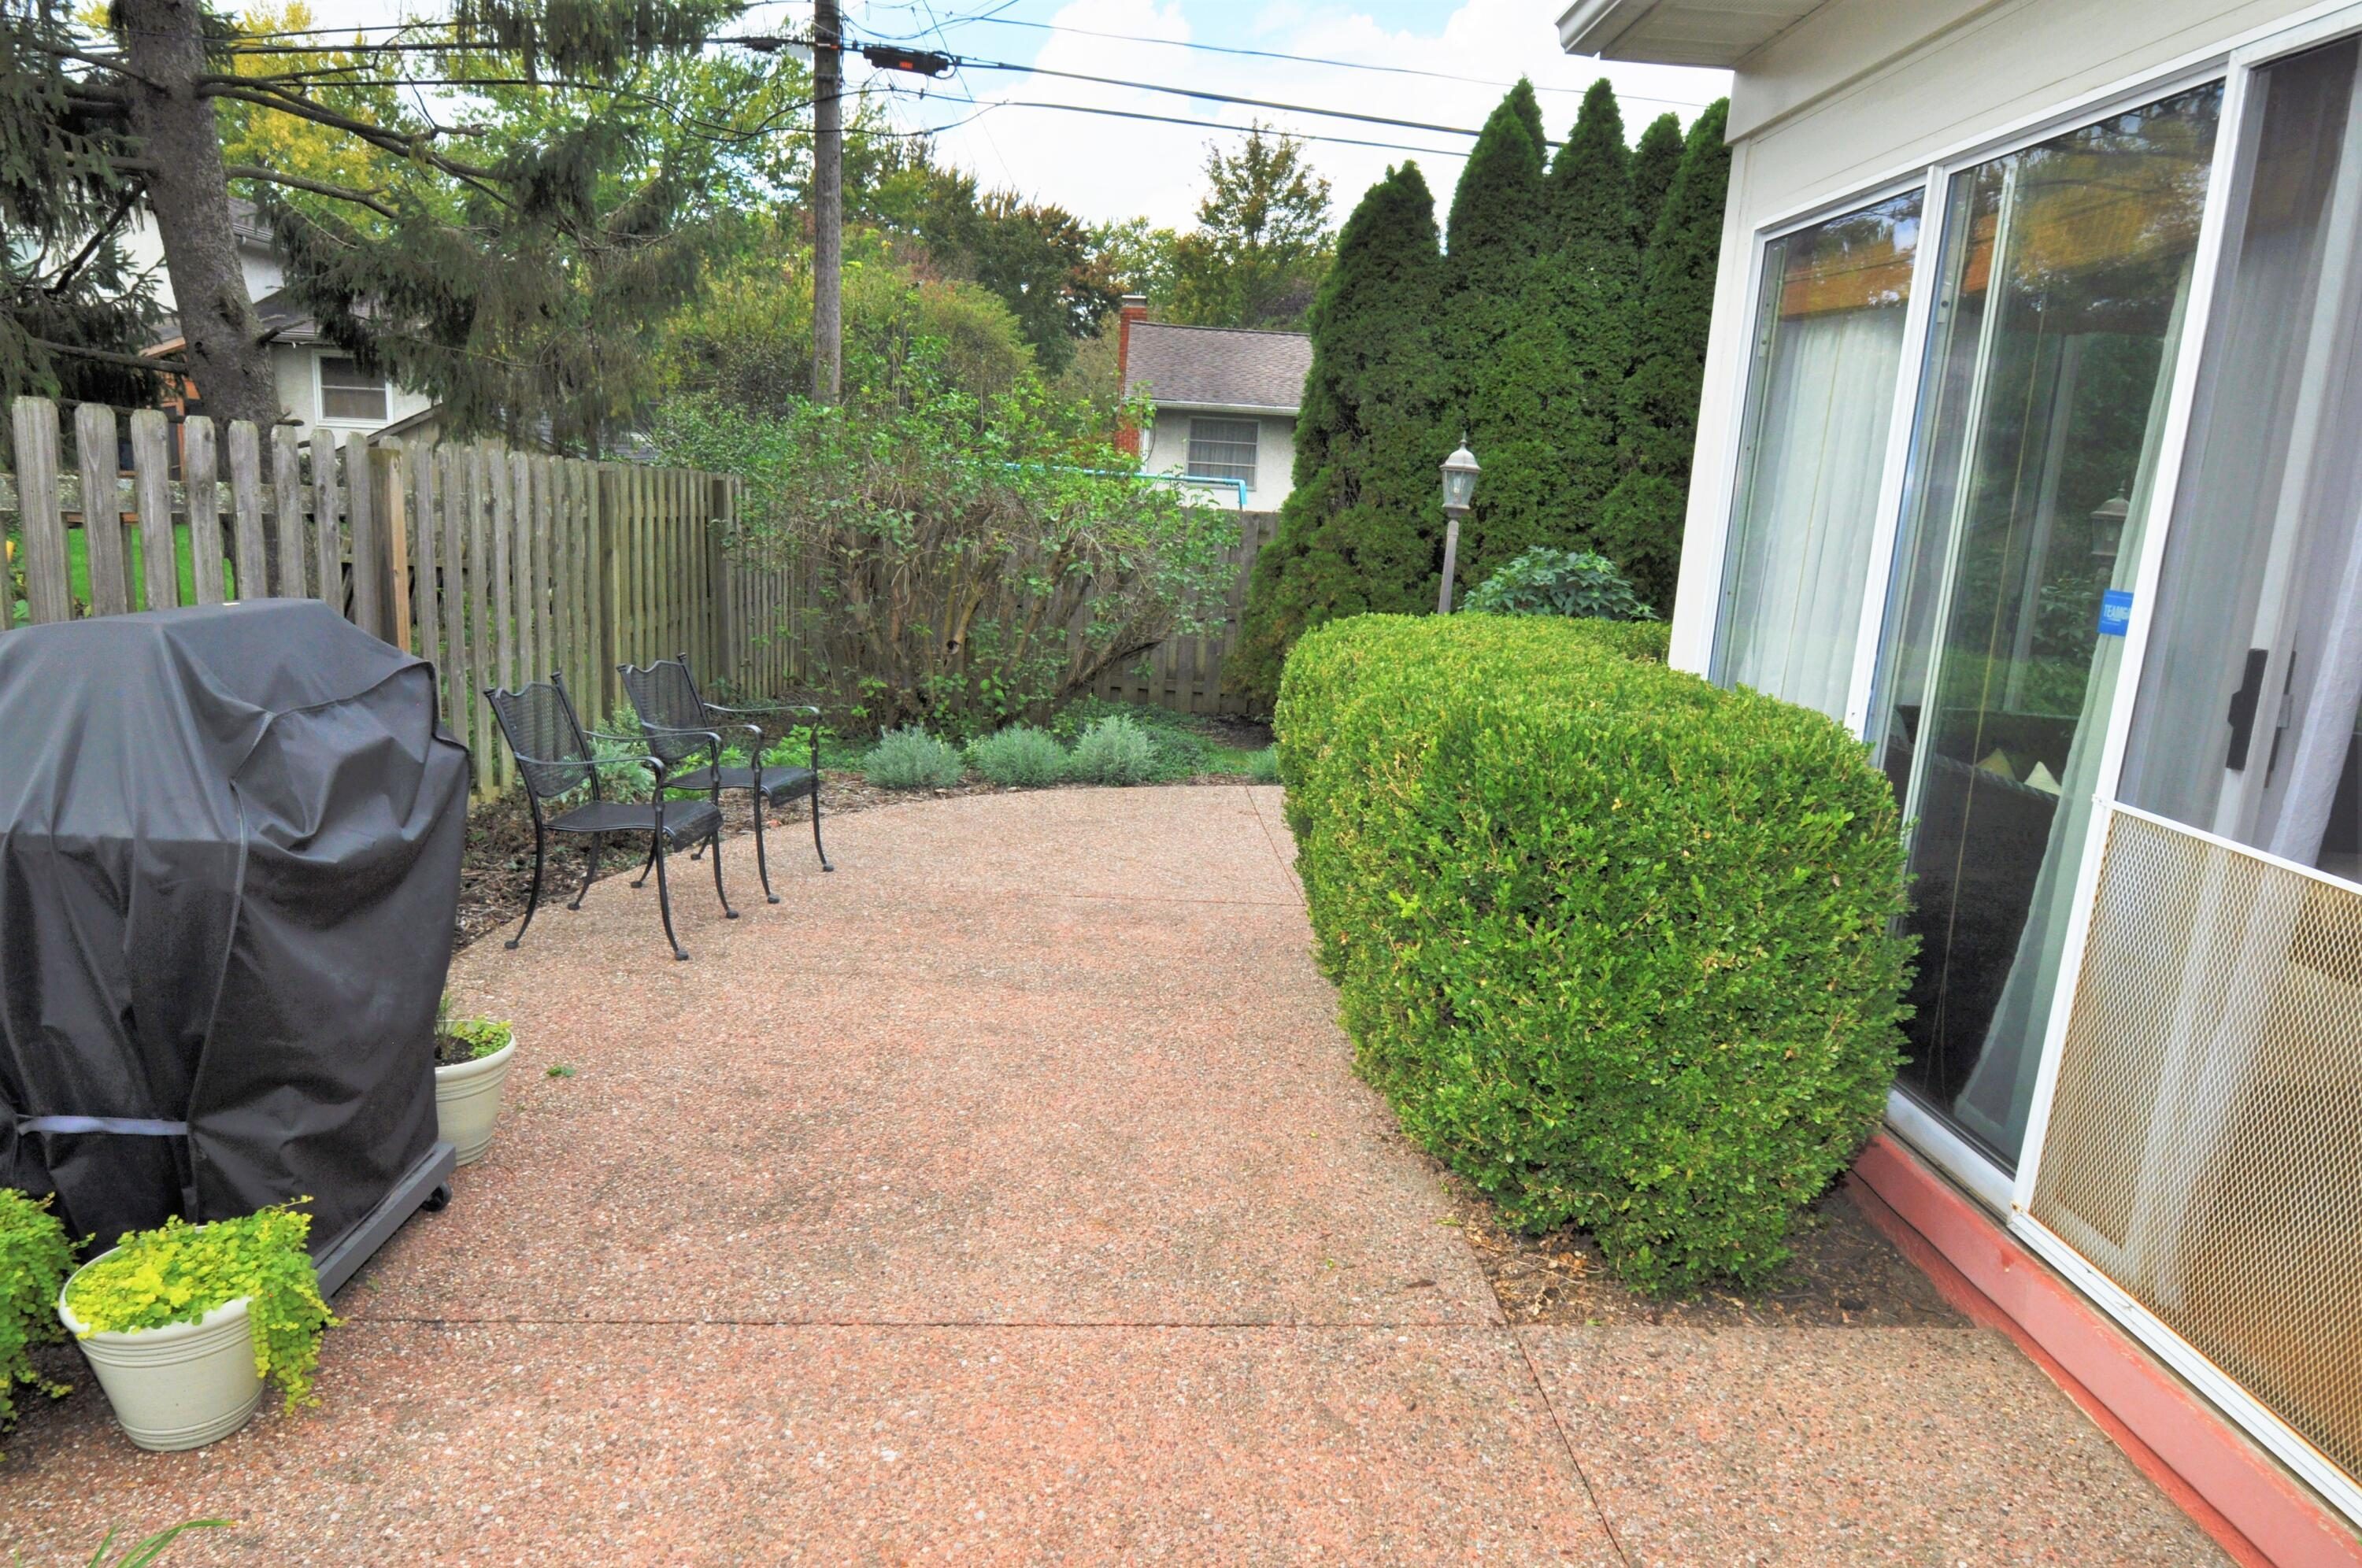 Lushly landscaped Patio Area